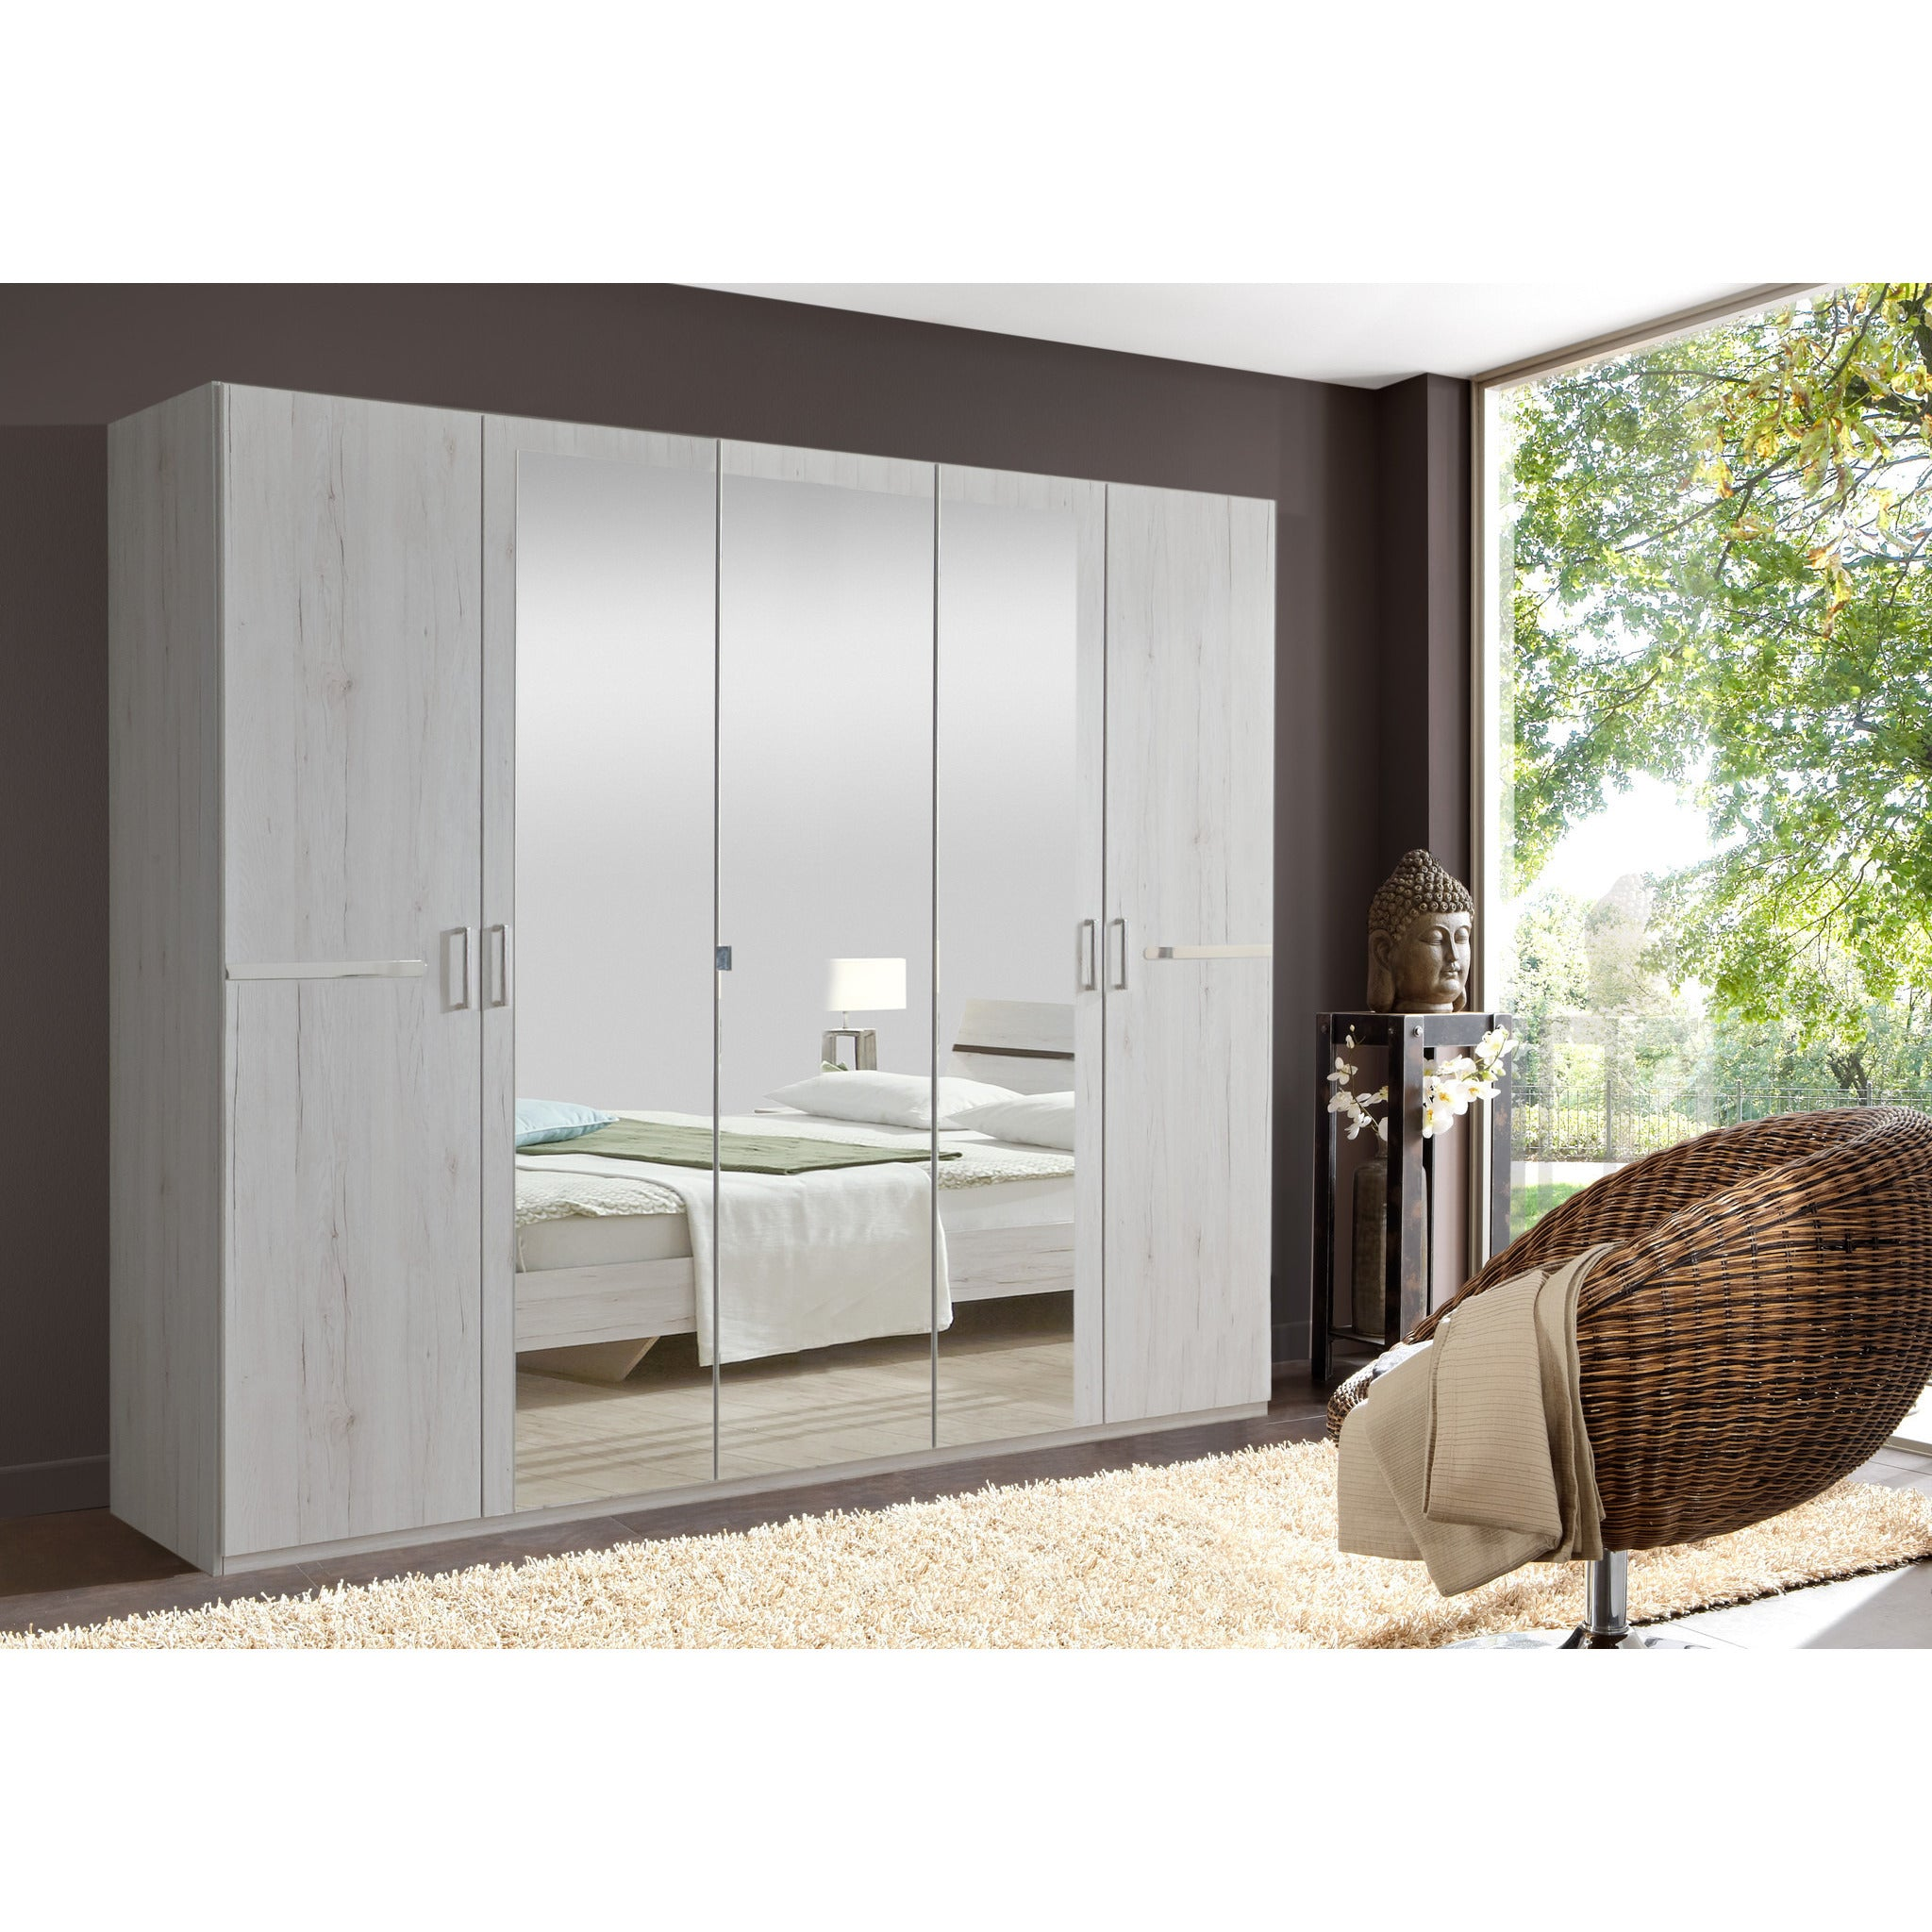 Oak And White Bedroom Furniture Qmax City Range German Made Bedroom Furniture White Oak Freedom